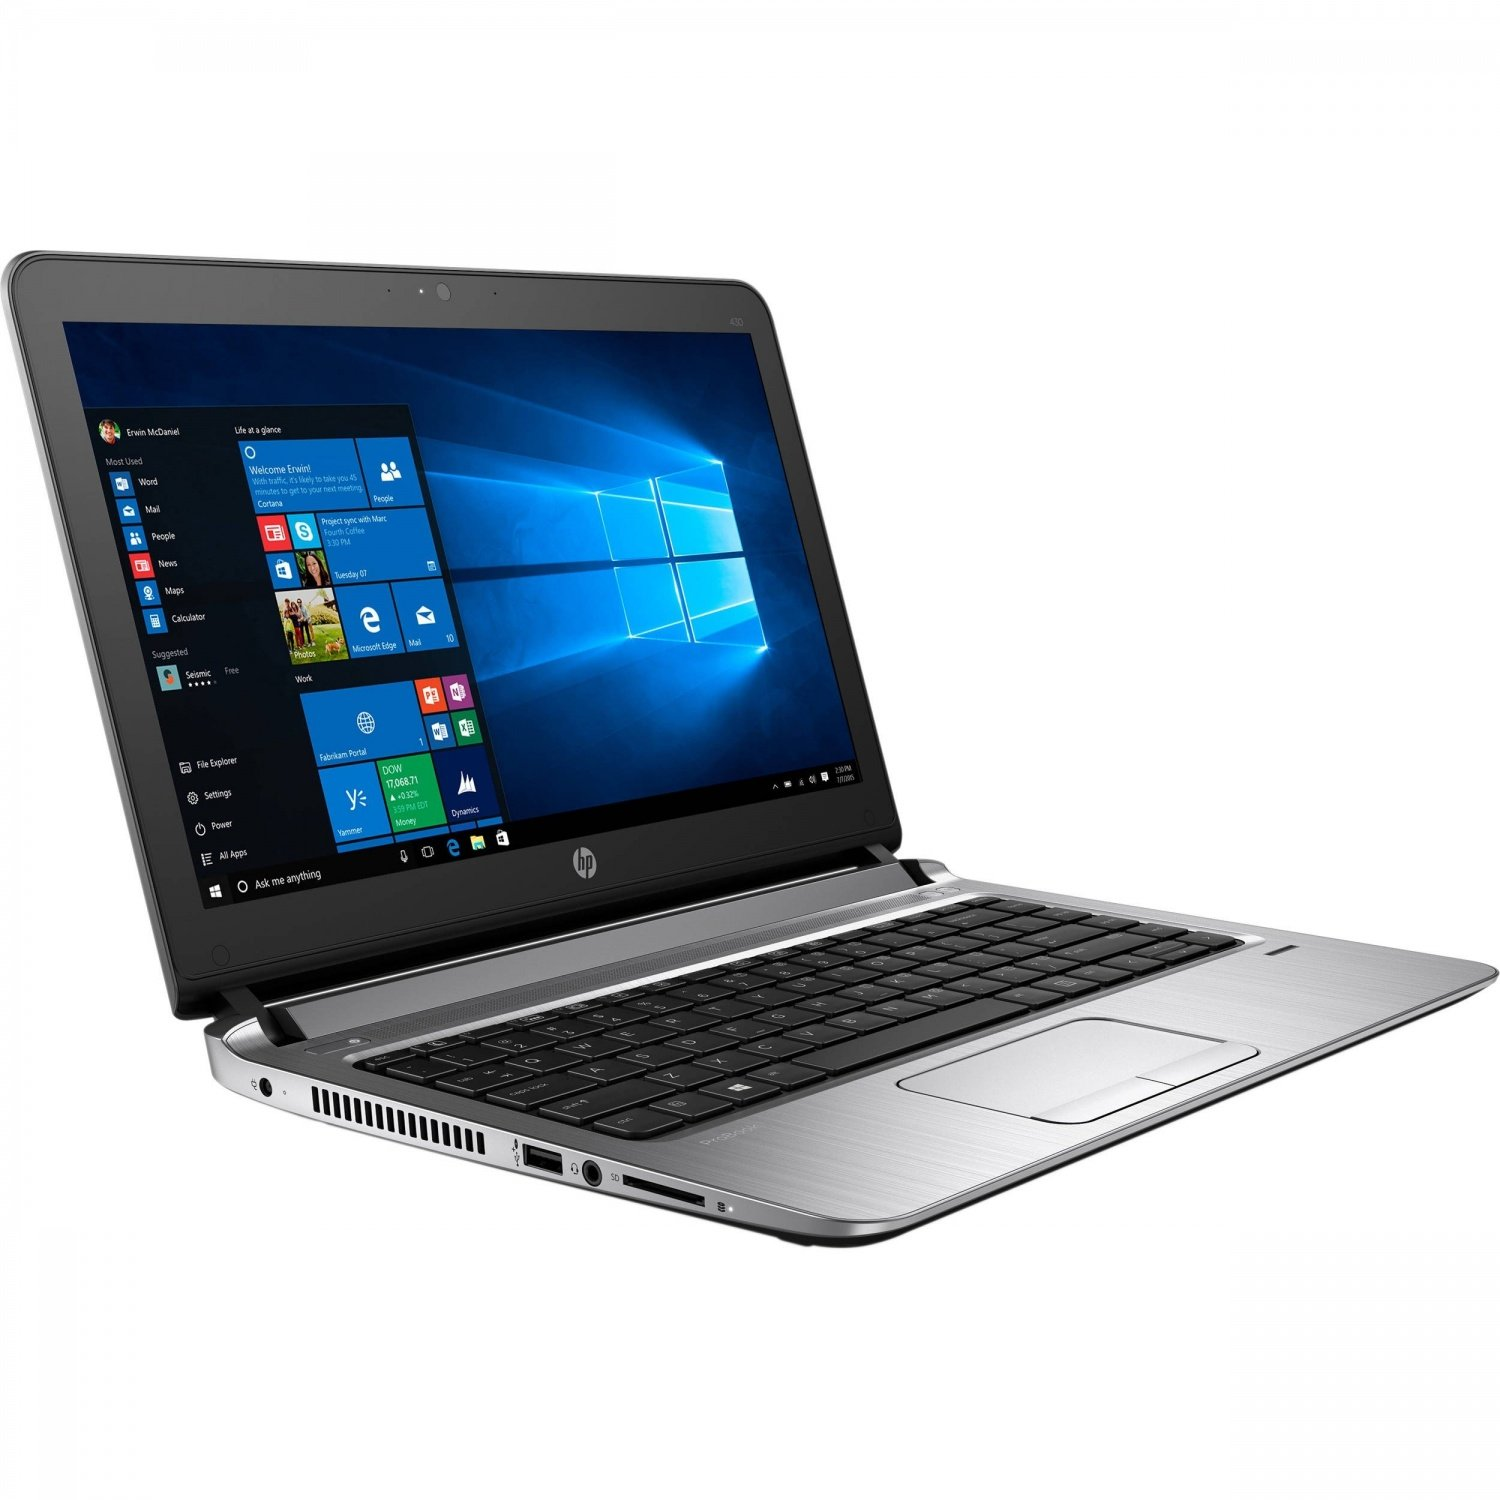 HP PROBOOK 430 G3 WINDOWS 10 DRIVER DOWNLOAD